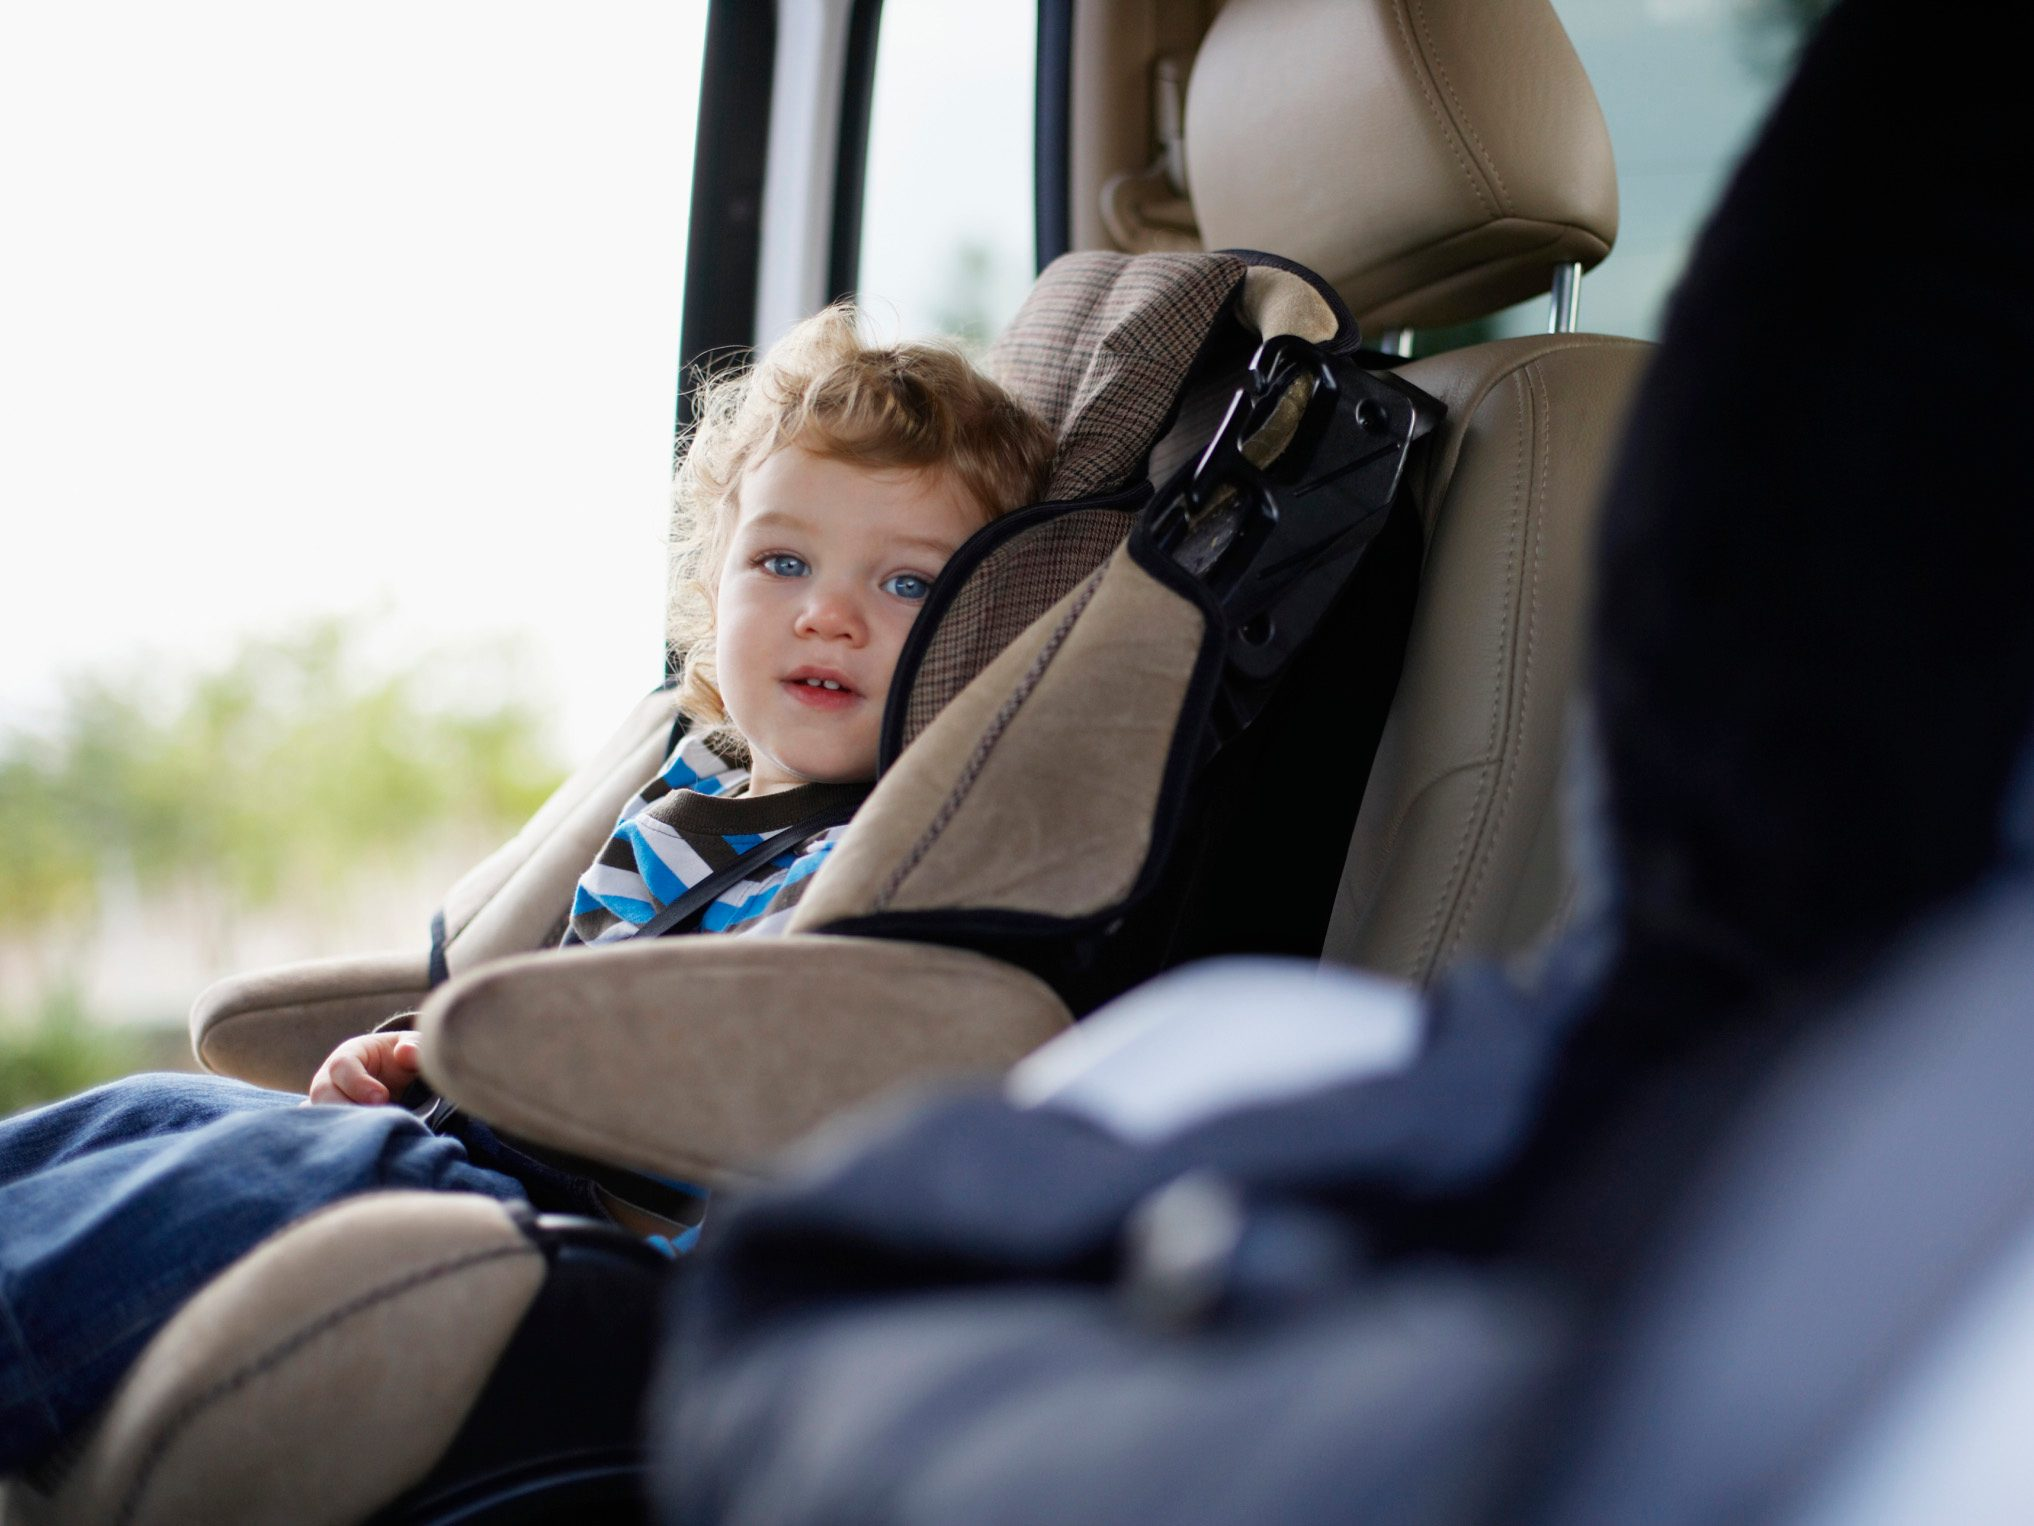 Distracted Driving: Just Don't Do It